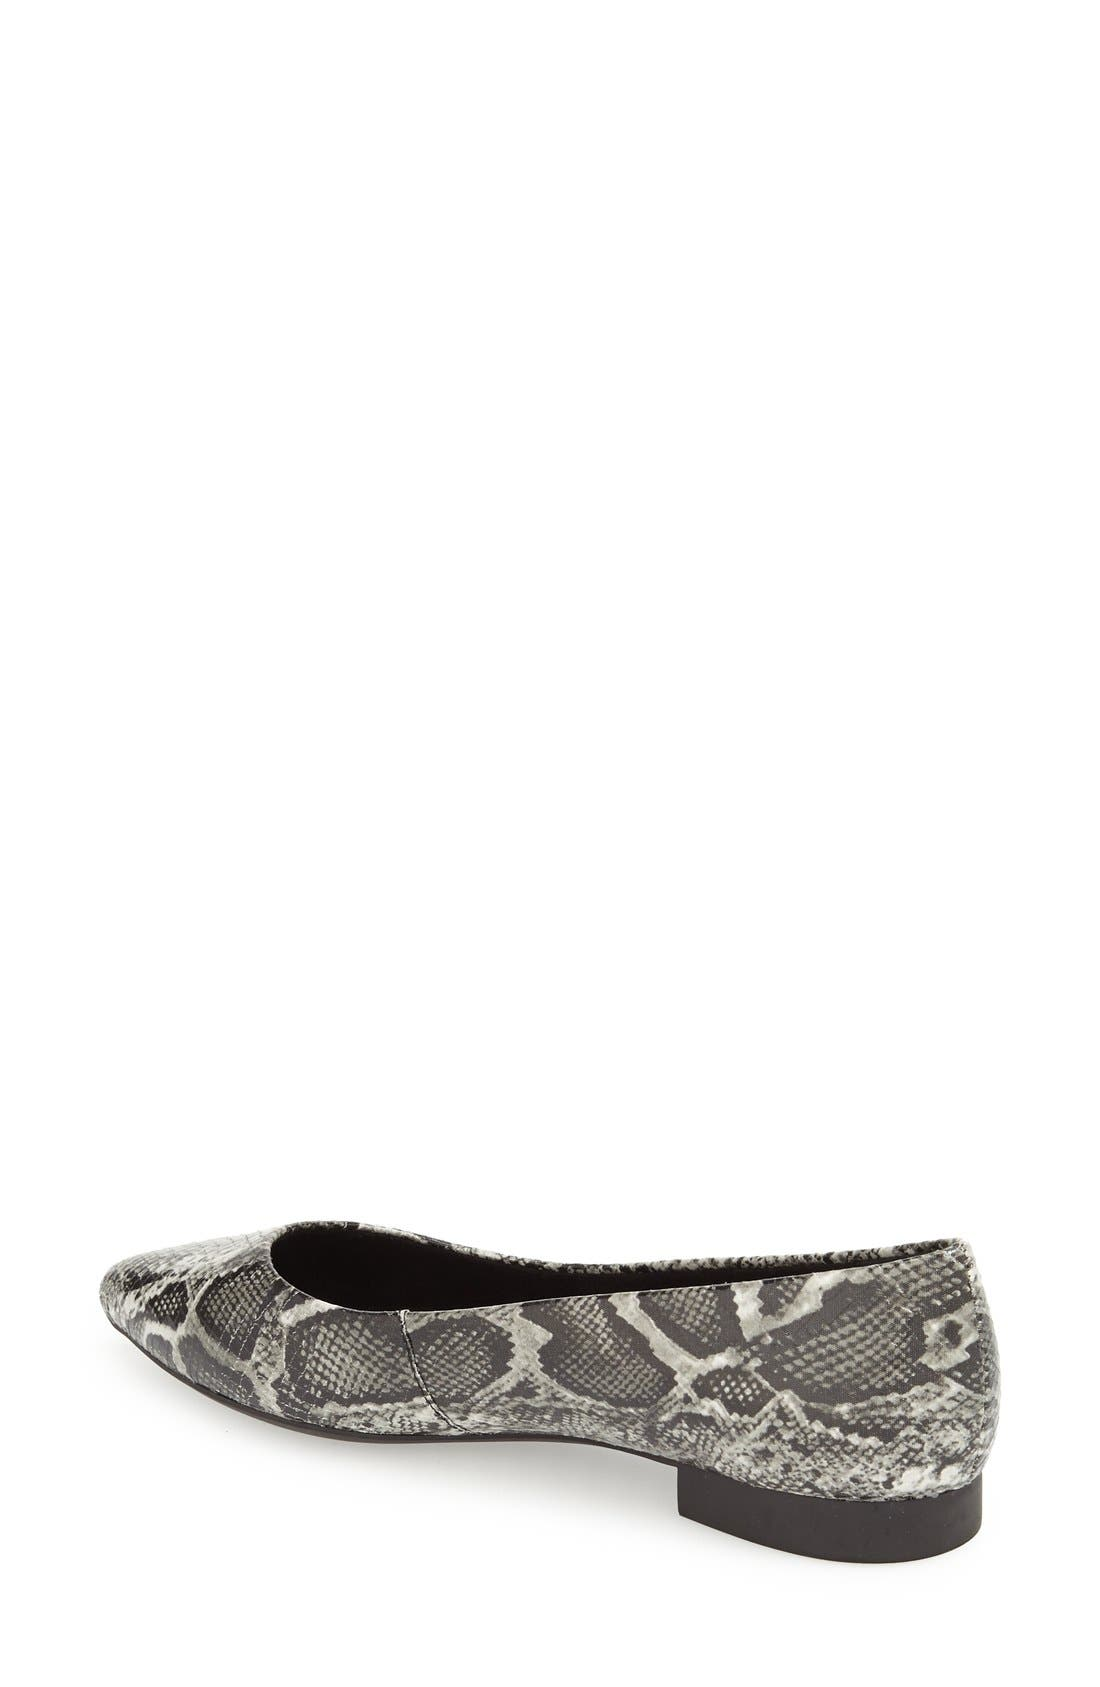 'Vivien' Pointy Toe Flat,                             Alternate thumbnail 2, color,                             Black/ White Snake Print